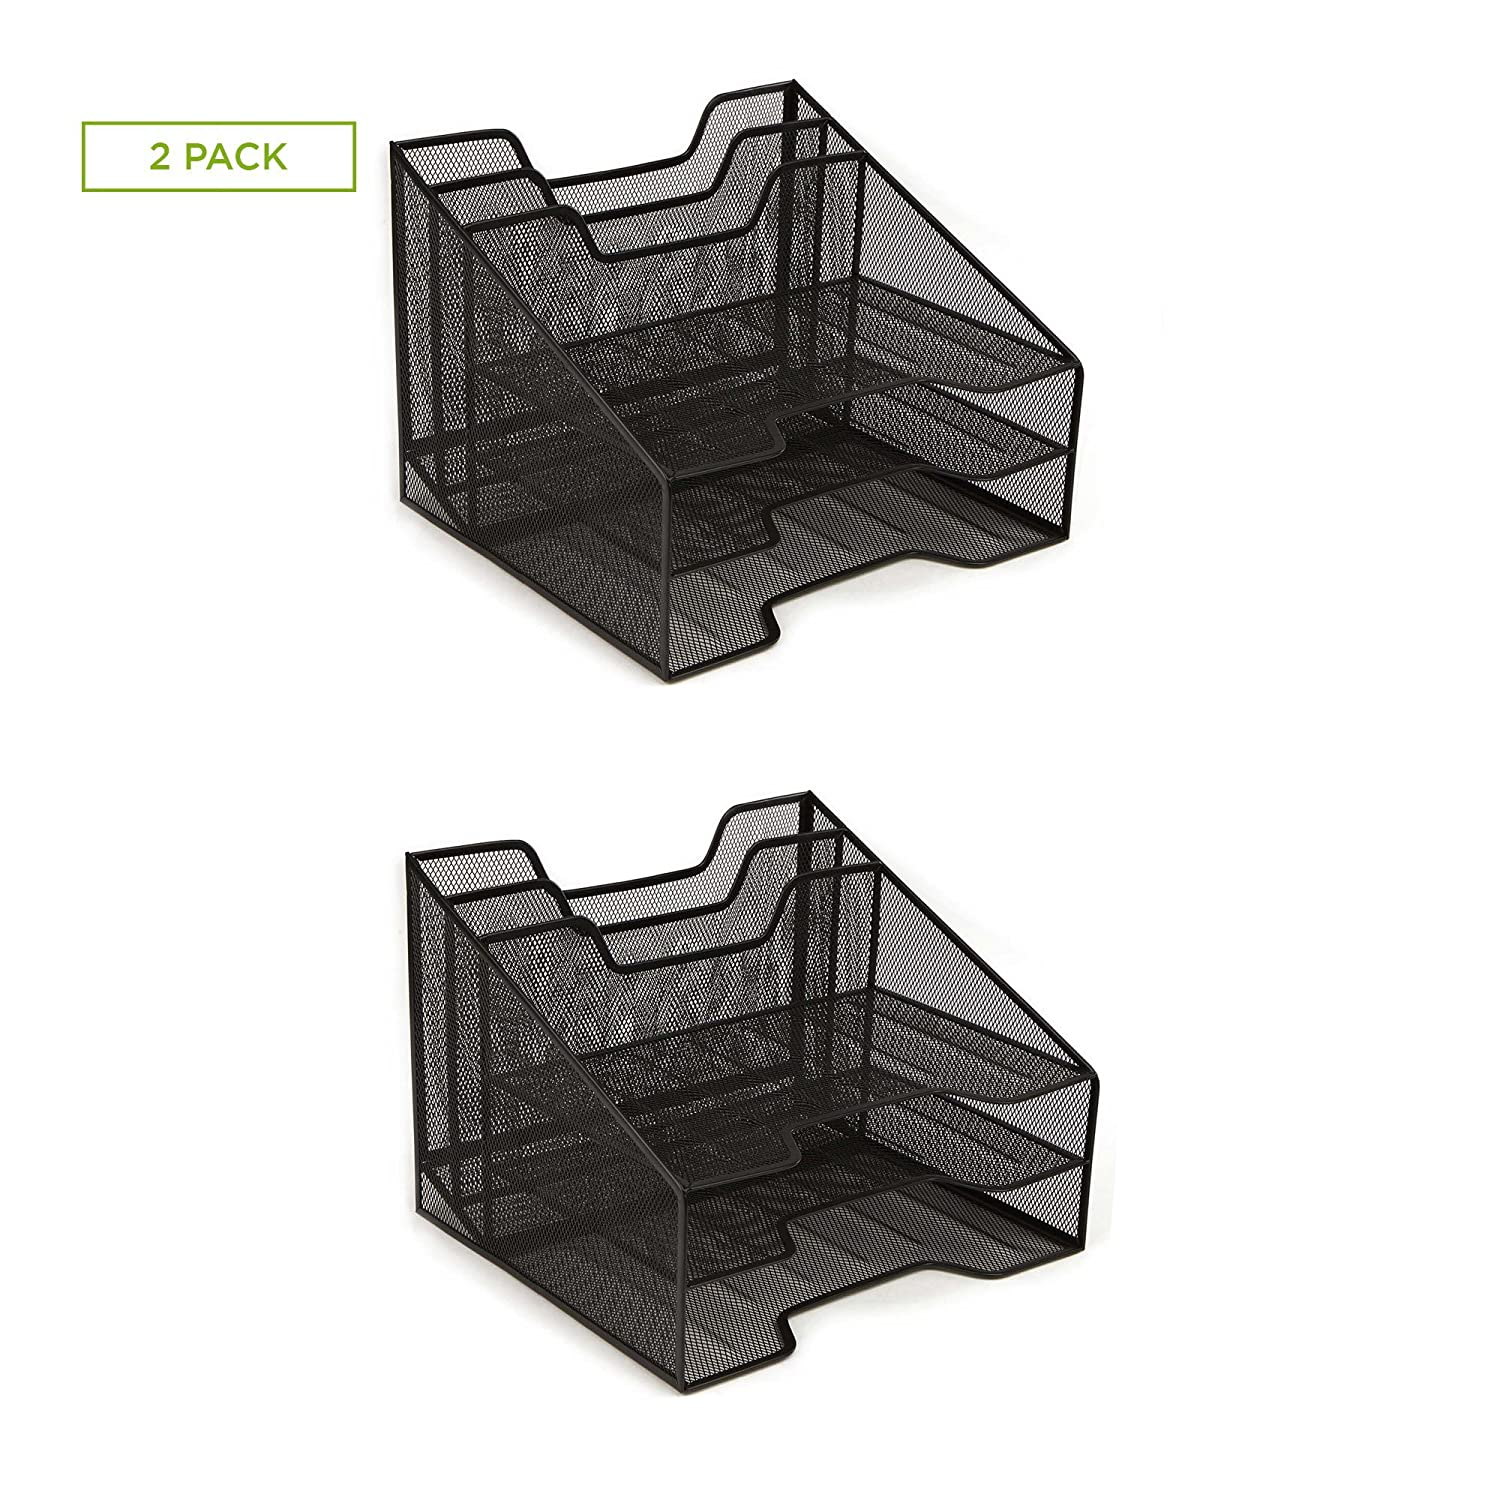 Stationary Mail Desk Accessories Mind Reader Mesh Desk Organizer 5 Trays Desktop Document Letter Tray for Folders Black